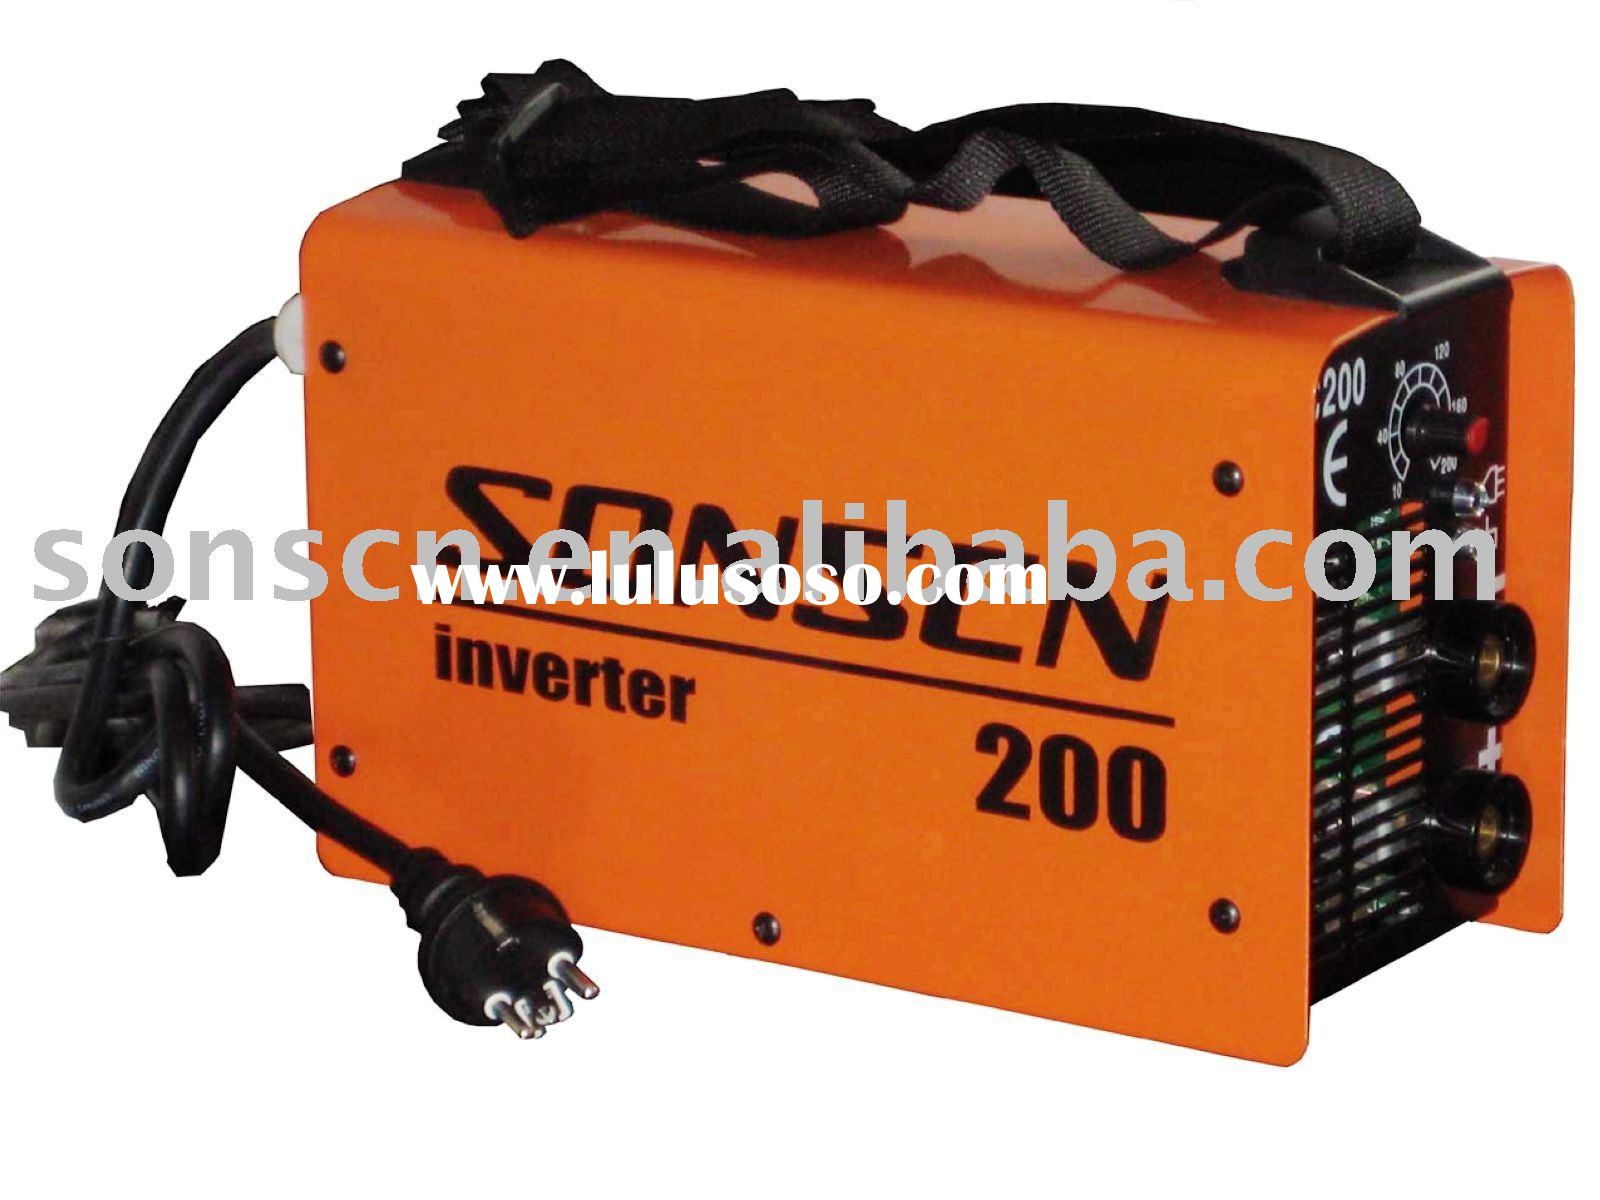 Portable inverter DC arc welding machine/mma welding machine/arc welder/mma welder ARC200